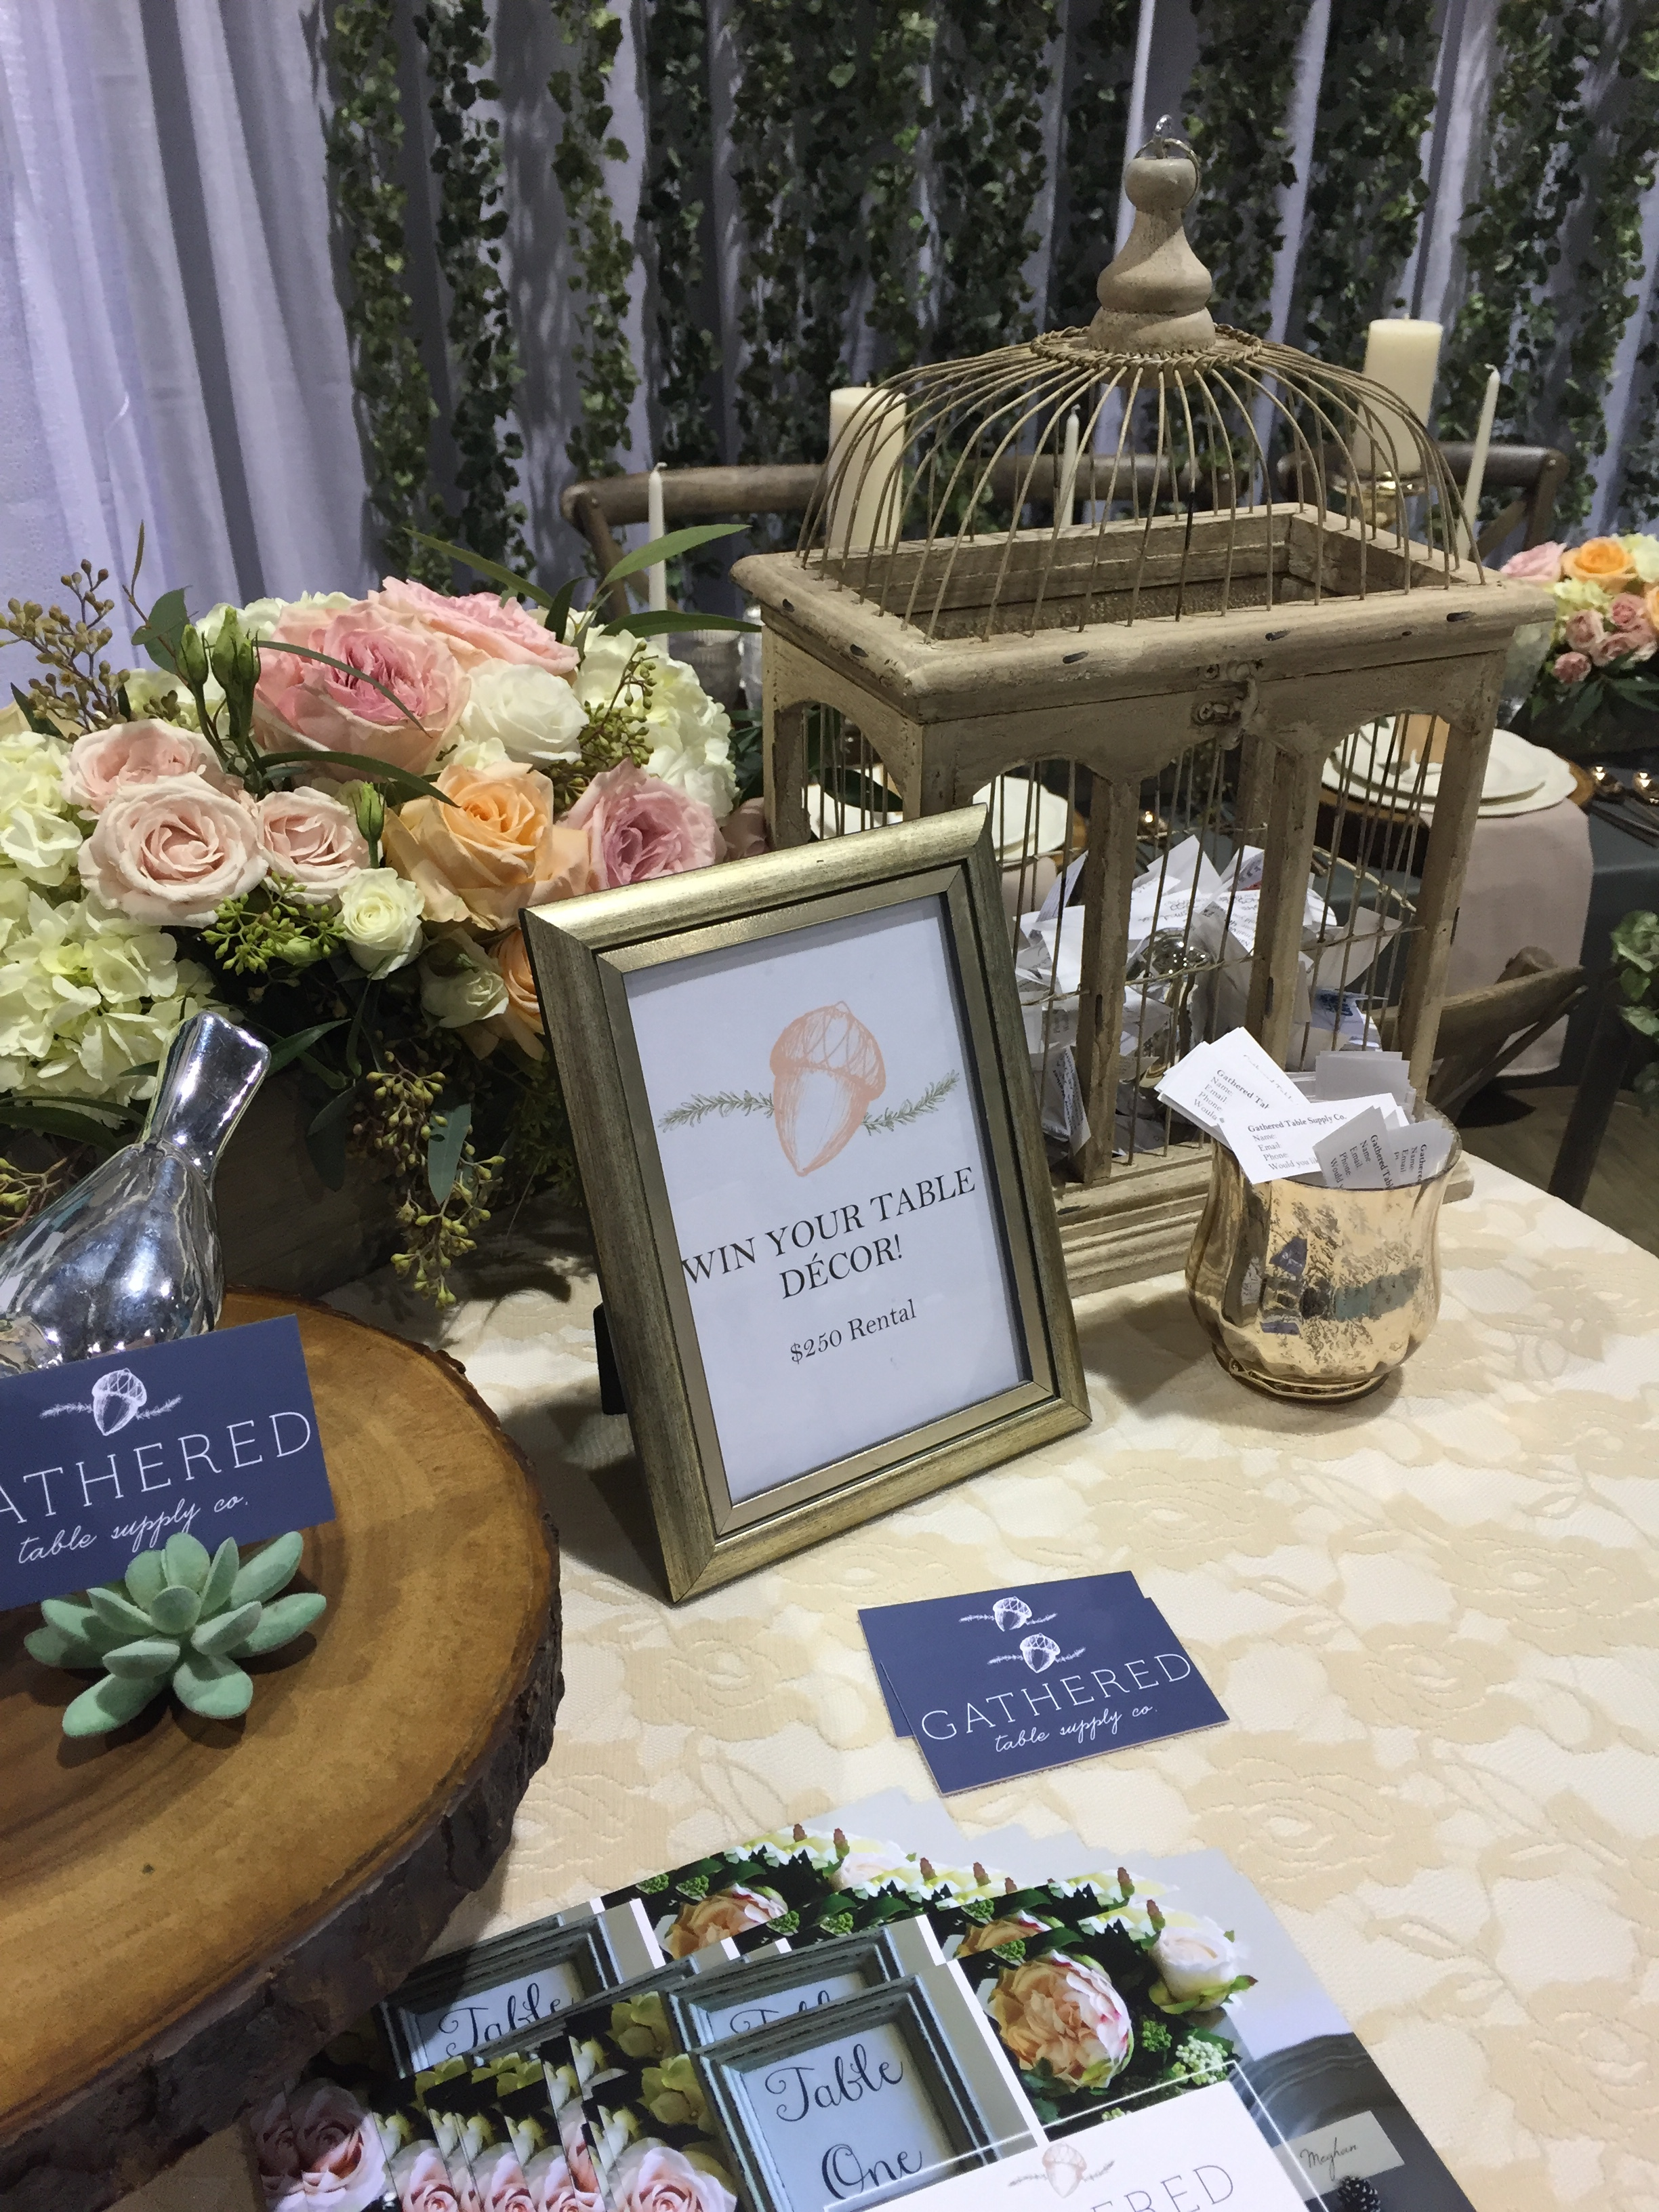 Featured Product: Wood Slice Cake Stand, Succulent Place Card Holder, Gold Mercury Glass Votive, Beige Rustic Birdcage